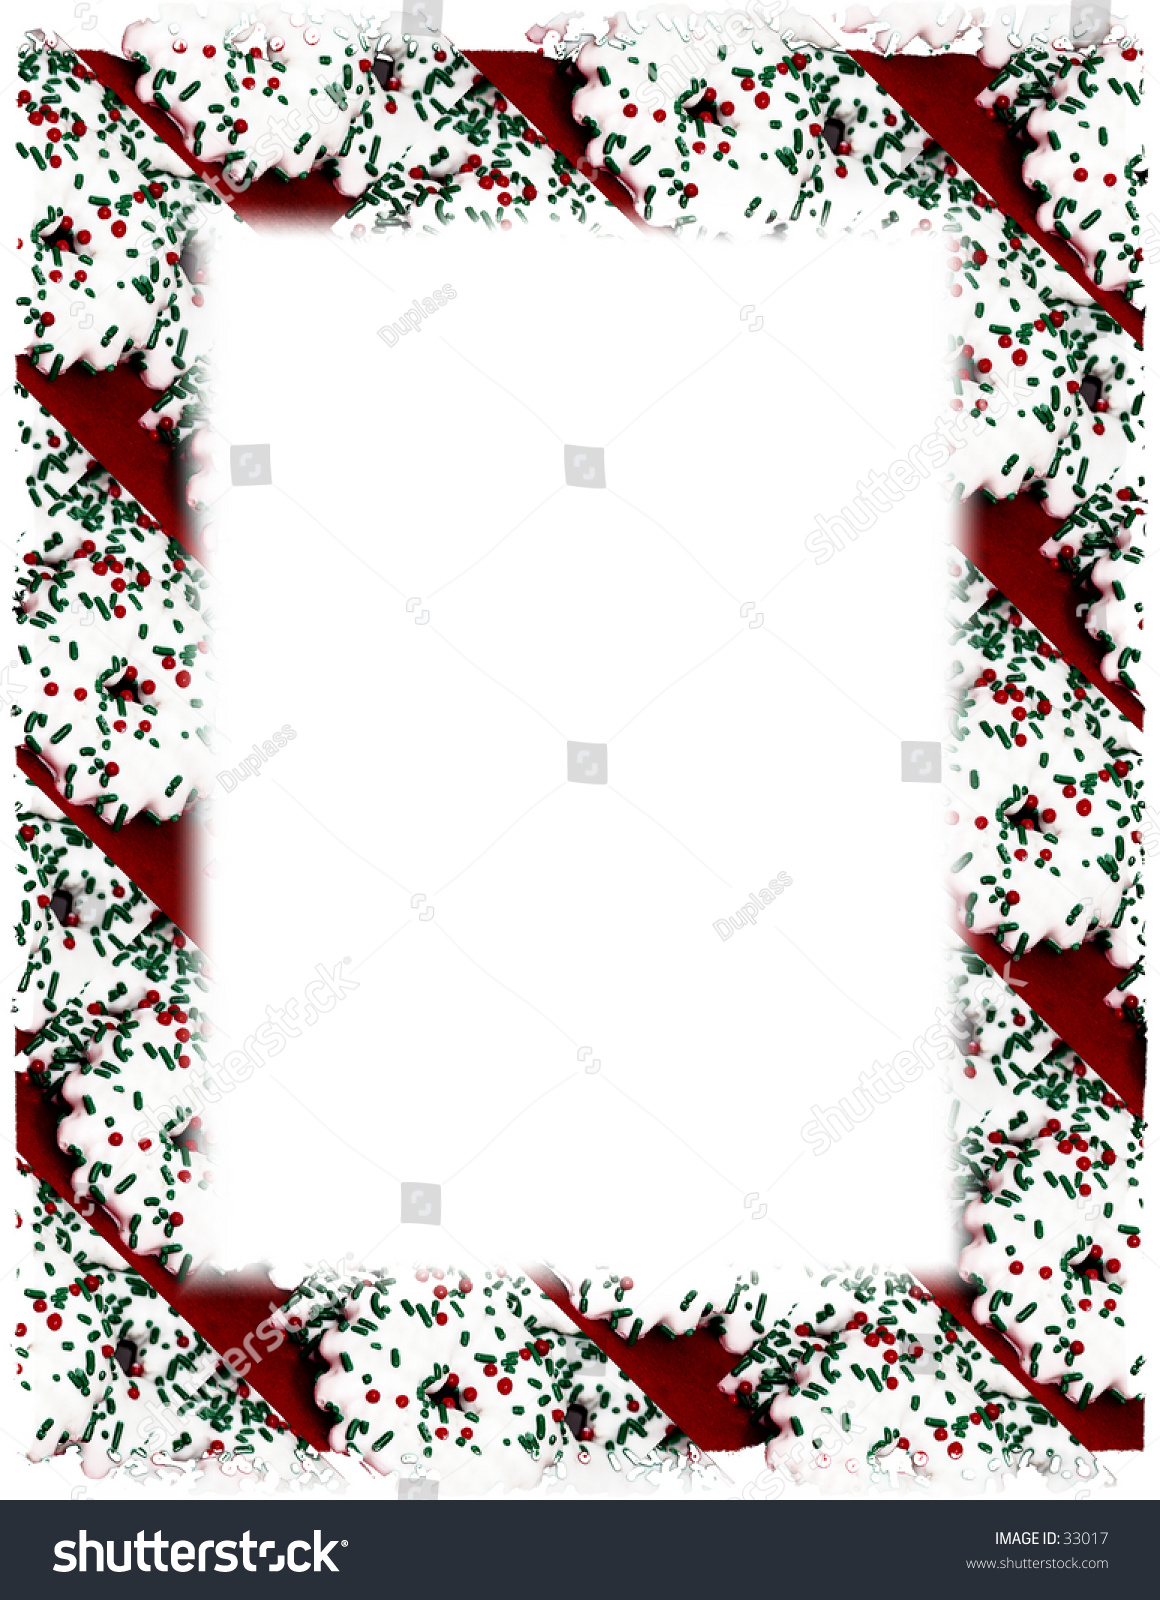 White Iced Christmas Cookie Frame On Stock Photo (Edit Now) 33017 ...